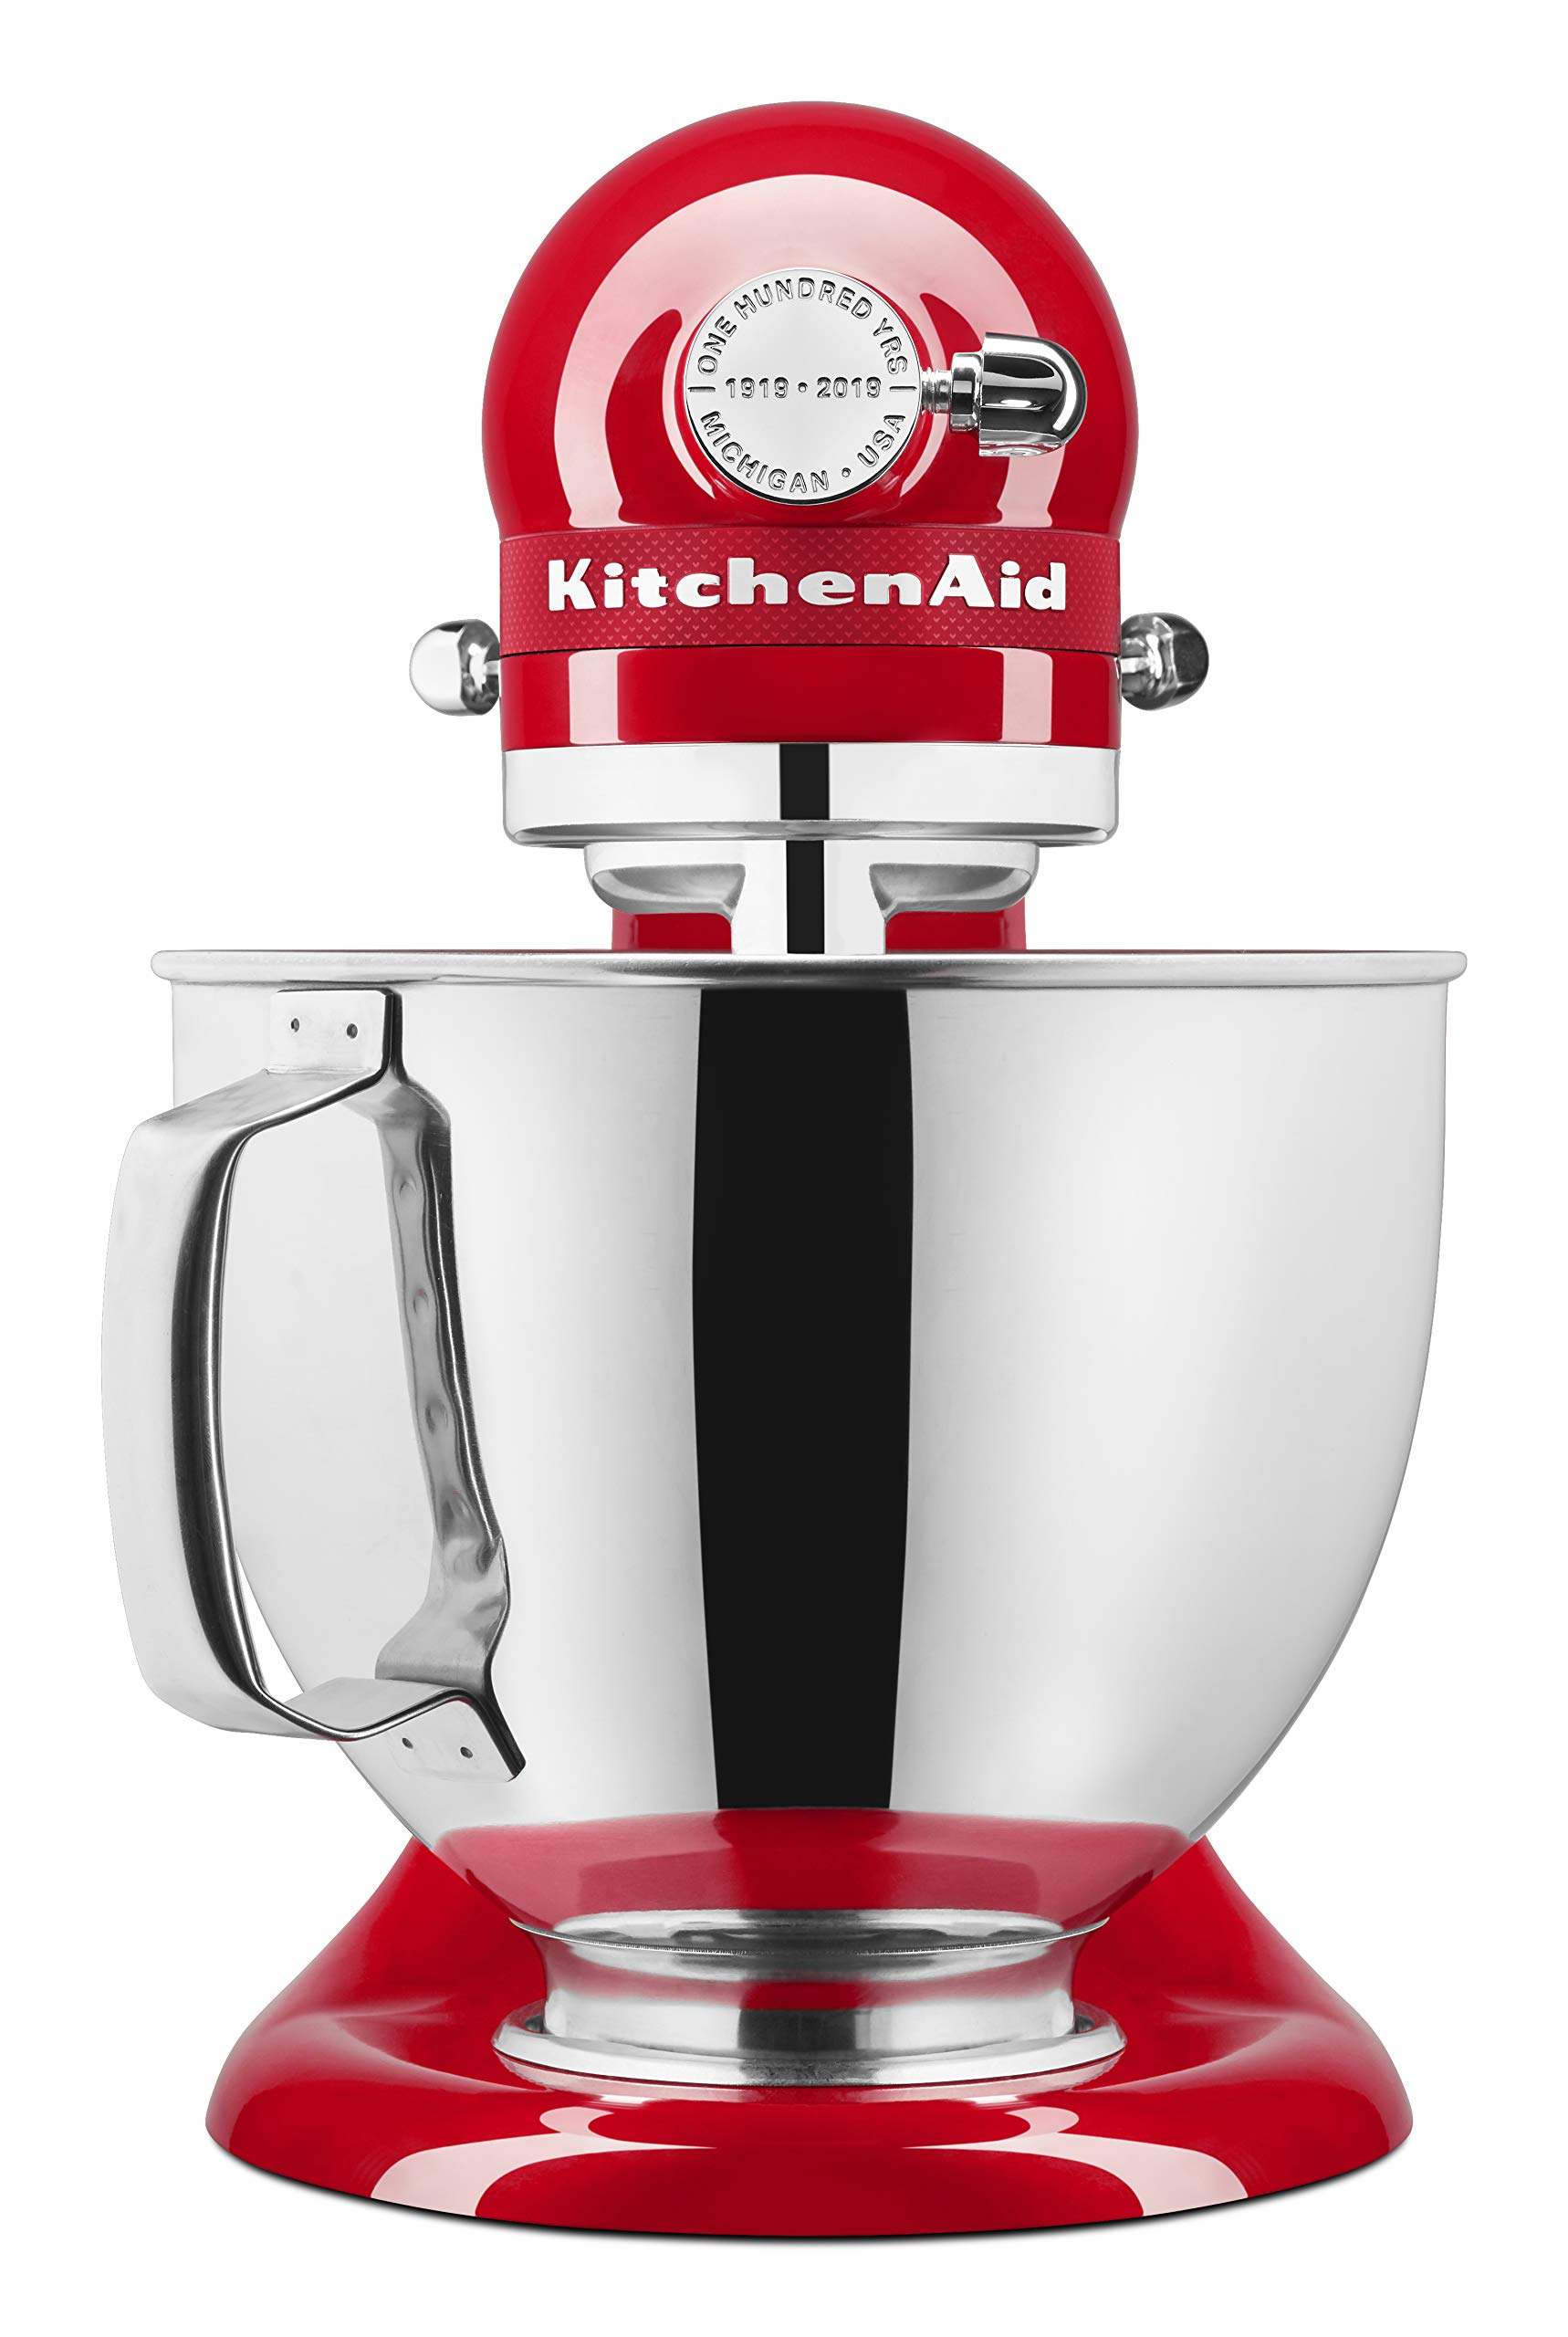 KitchenAid KSM180QHSD 100 Year Limited Edition Queen of Hearts Stand Mixer, Passion Red by KitchenAid (Image #3)